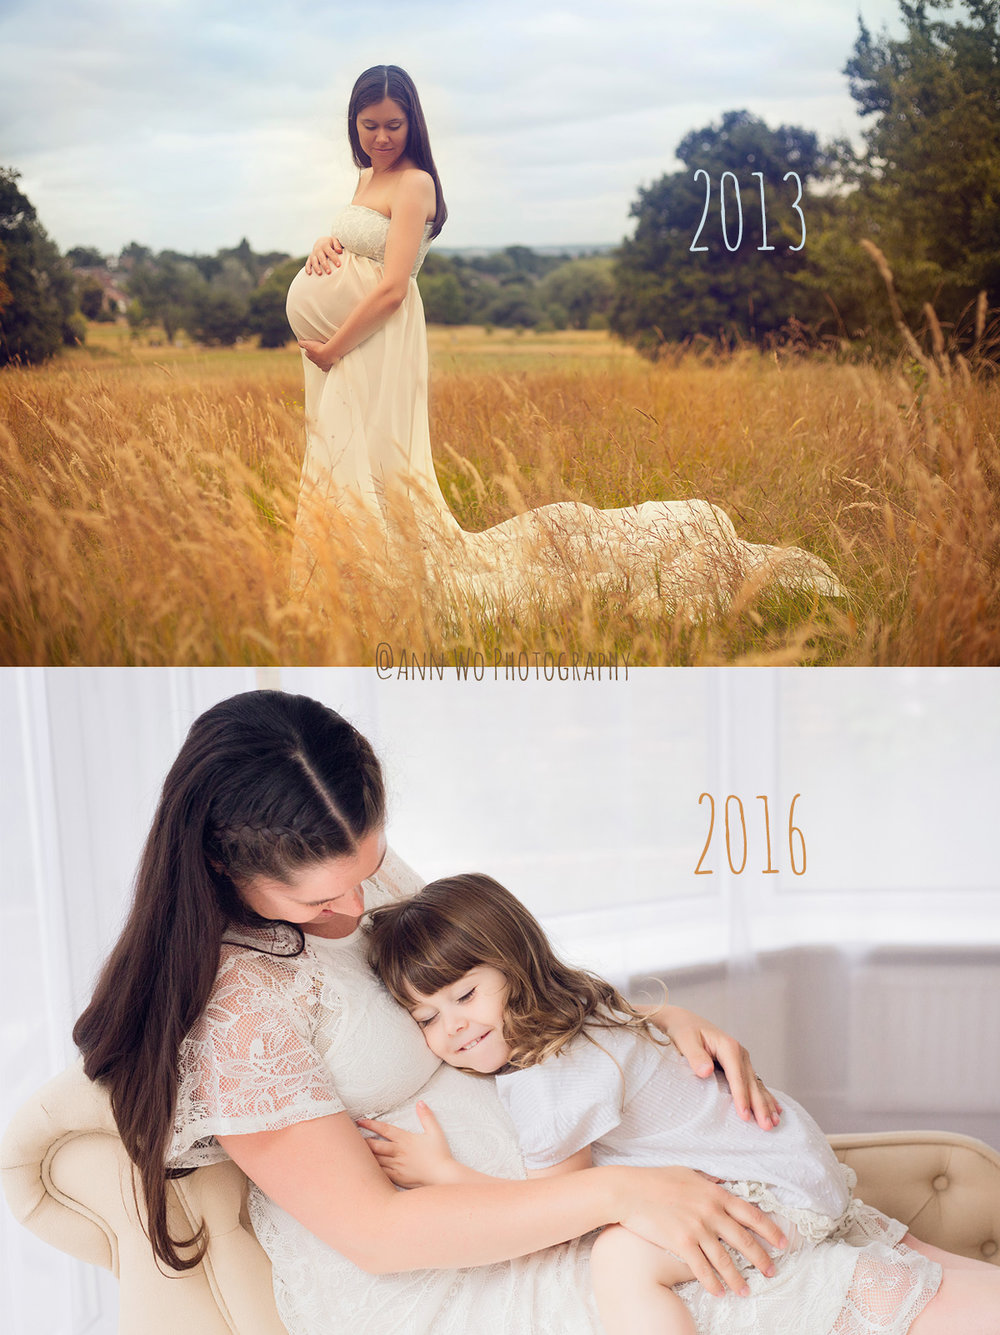 maternity-photography-with-sibling-ann-wo-london.jpg